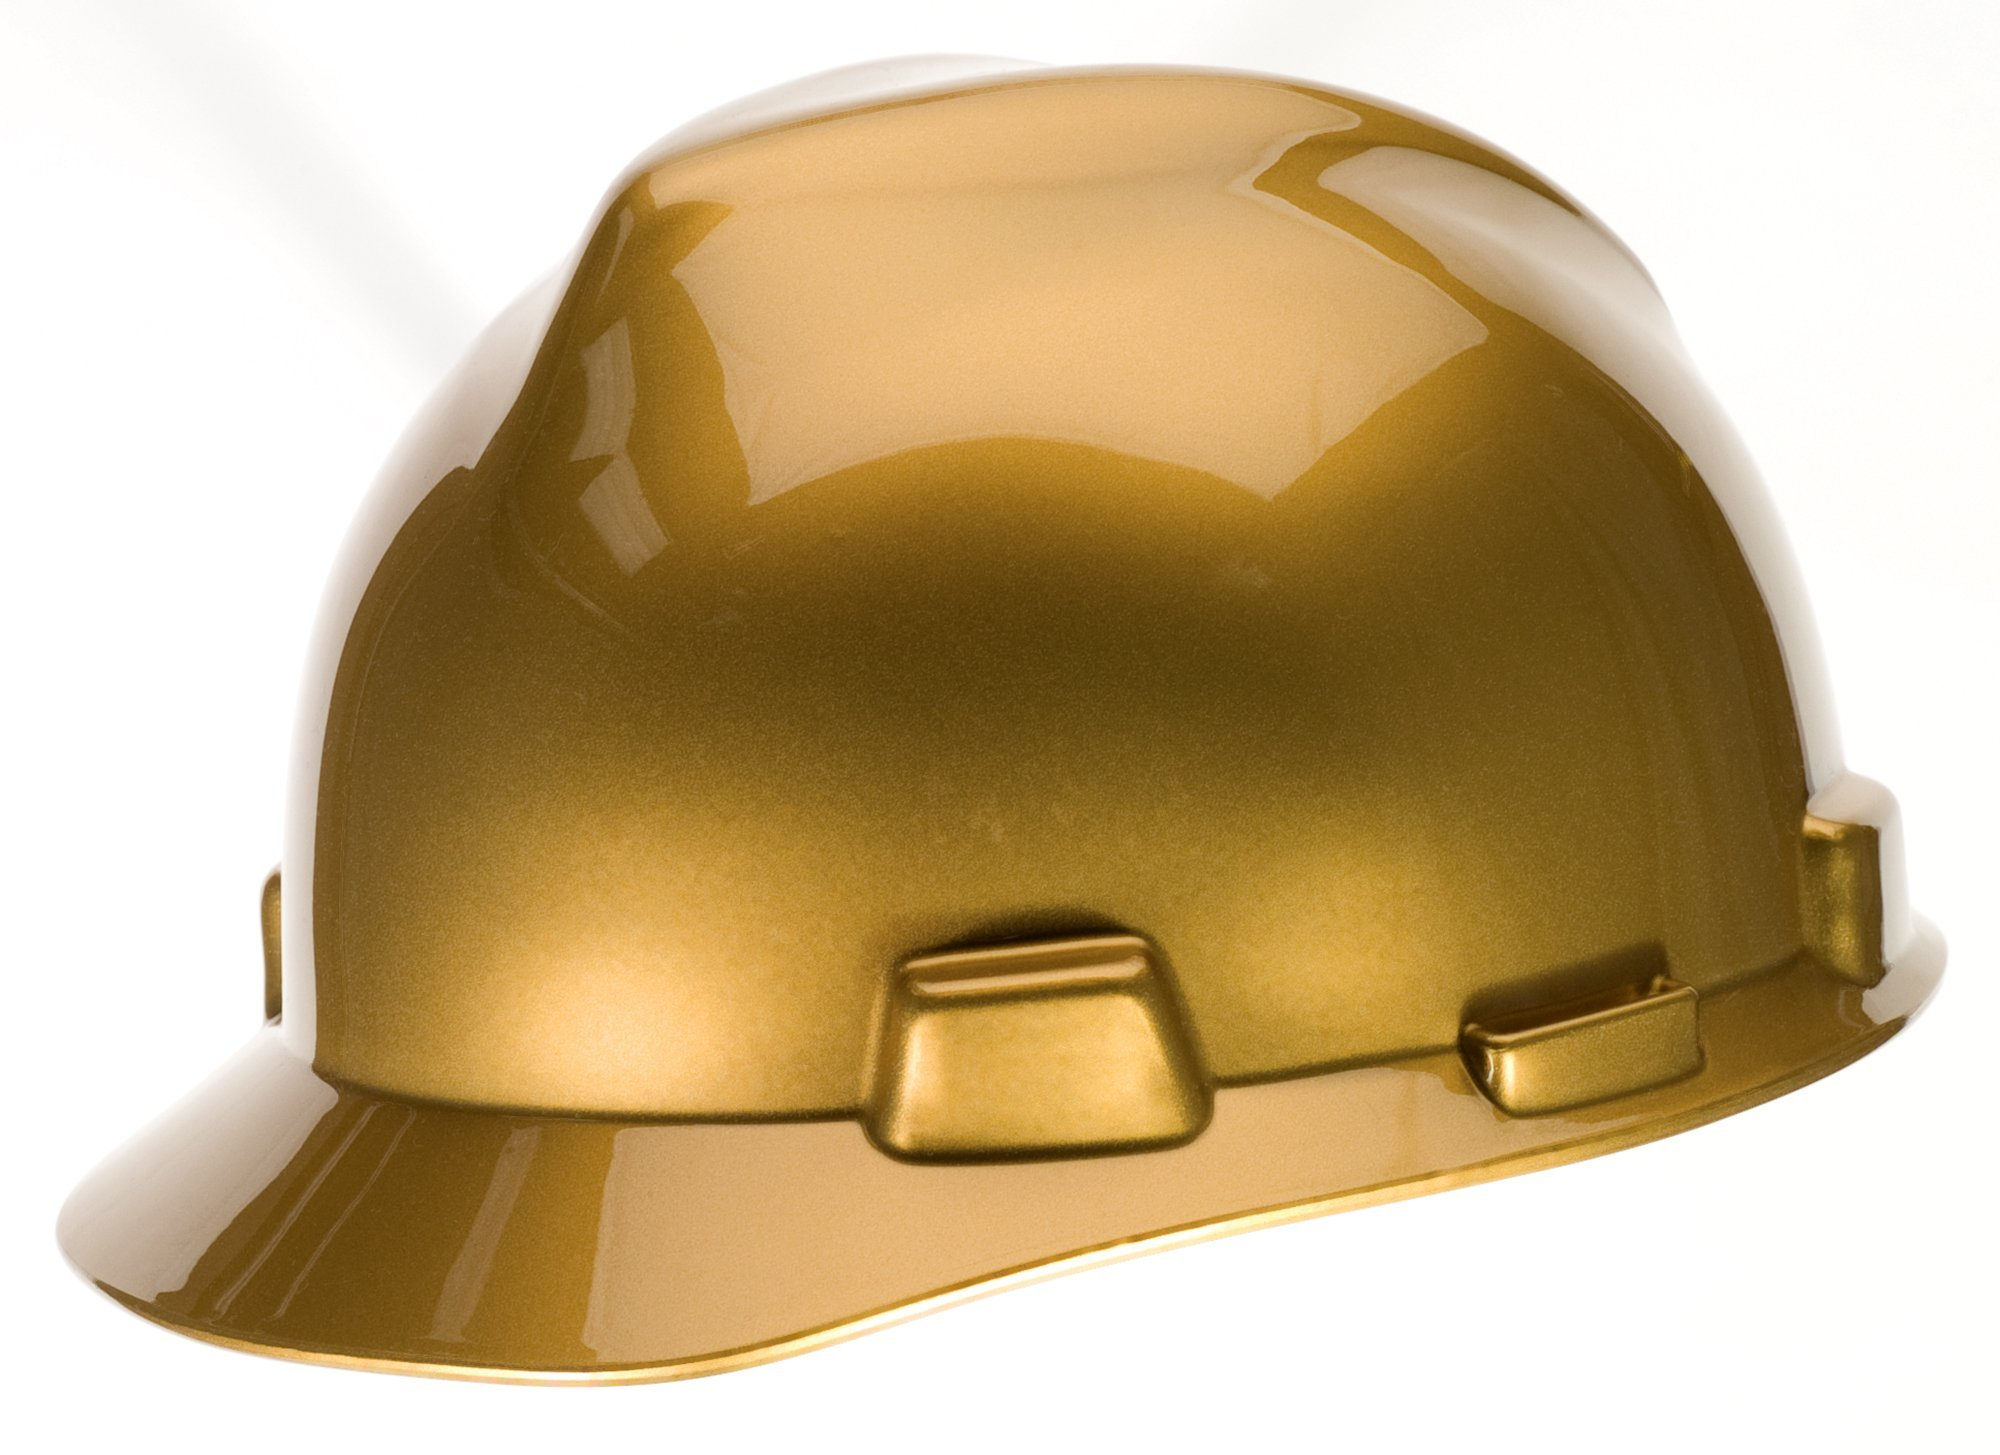 MSA 10101854 Specialty V-Gard Protective Cap with Fast Trac III Suspension, Metallic Gold